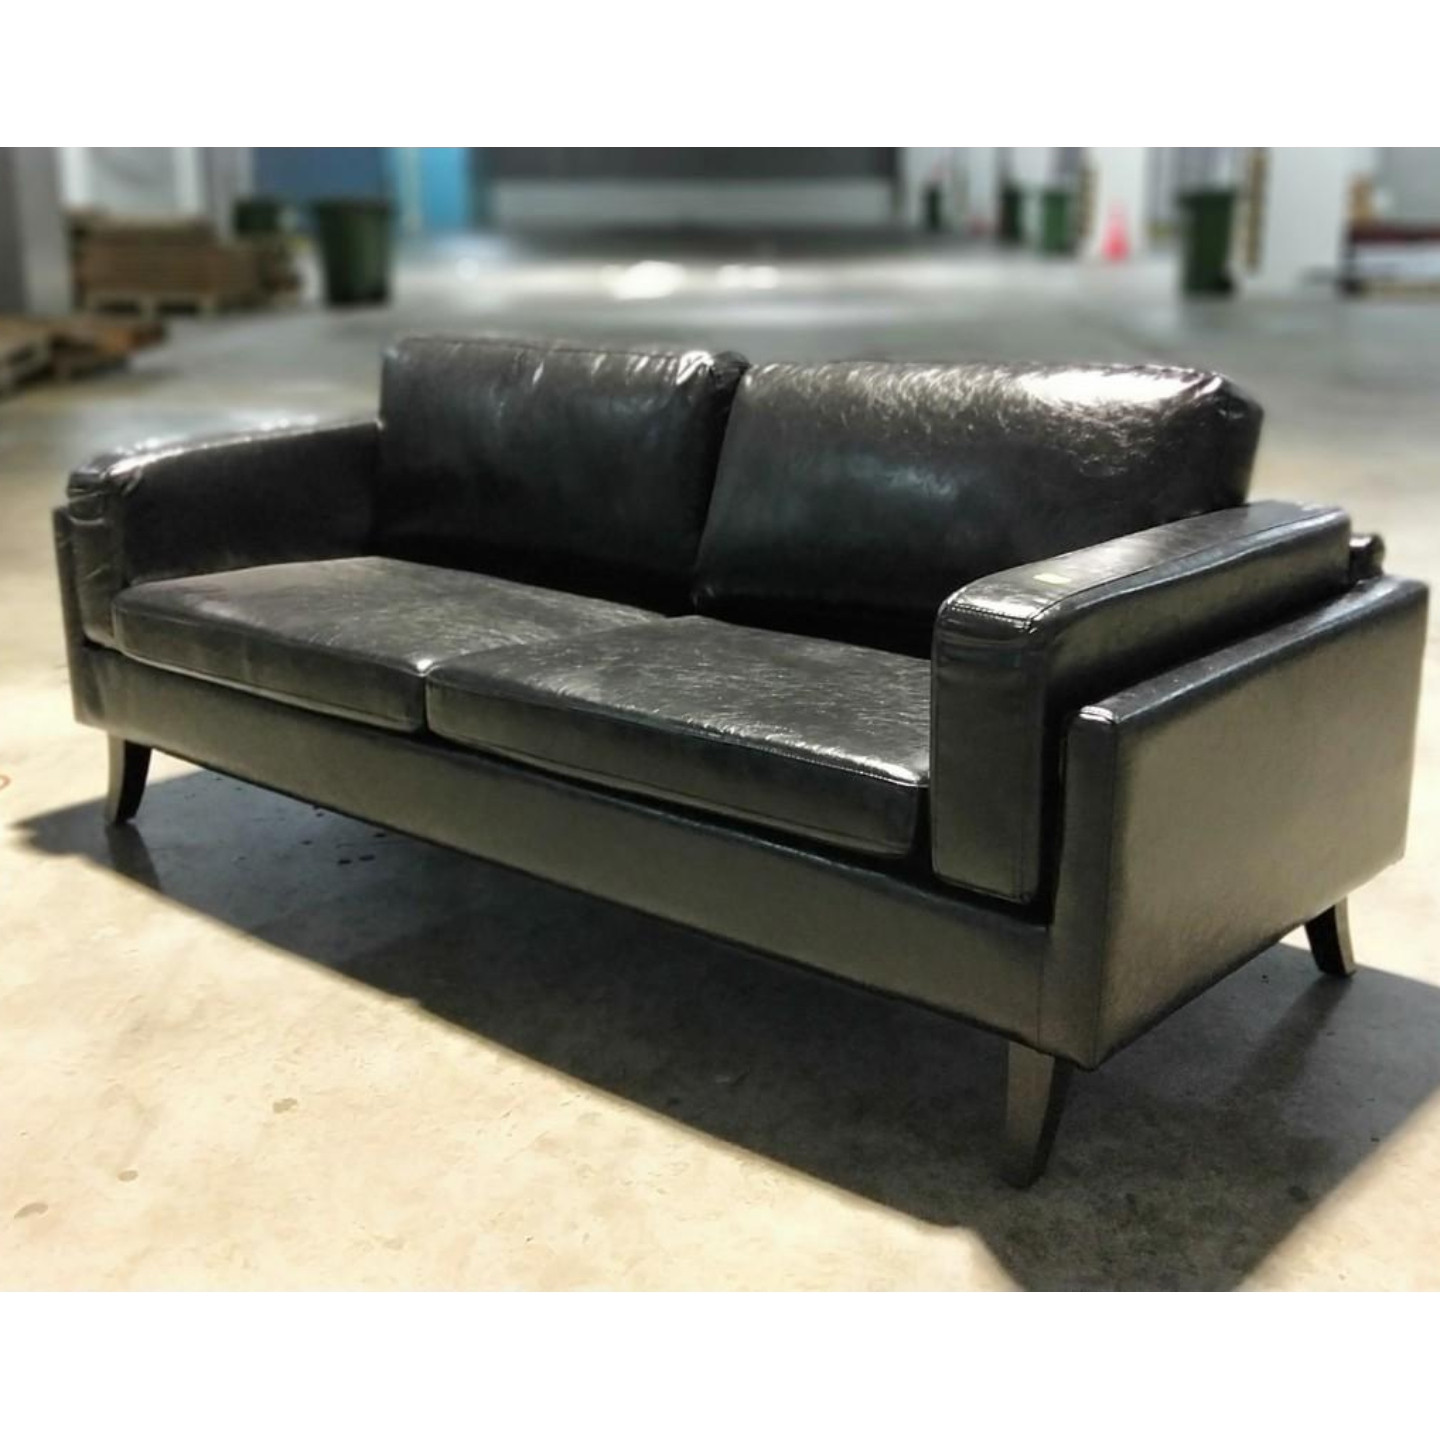 VENZENI 3 Seater Designer Sofa in GLOSS BLACK PU